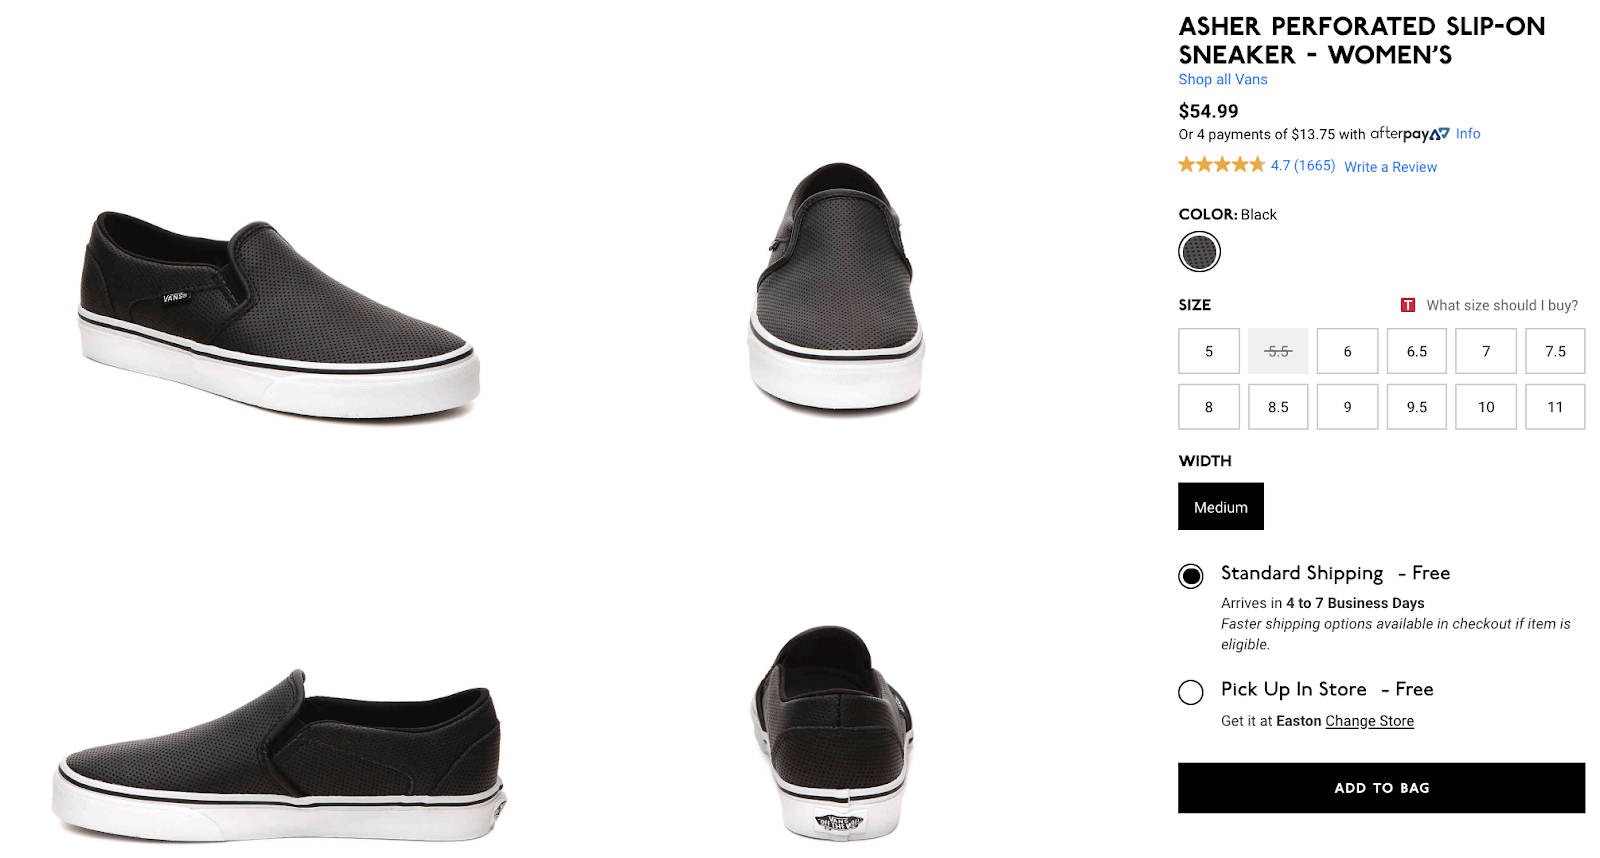 dsw-product-detail-page-asher-slip-on-sneaker